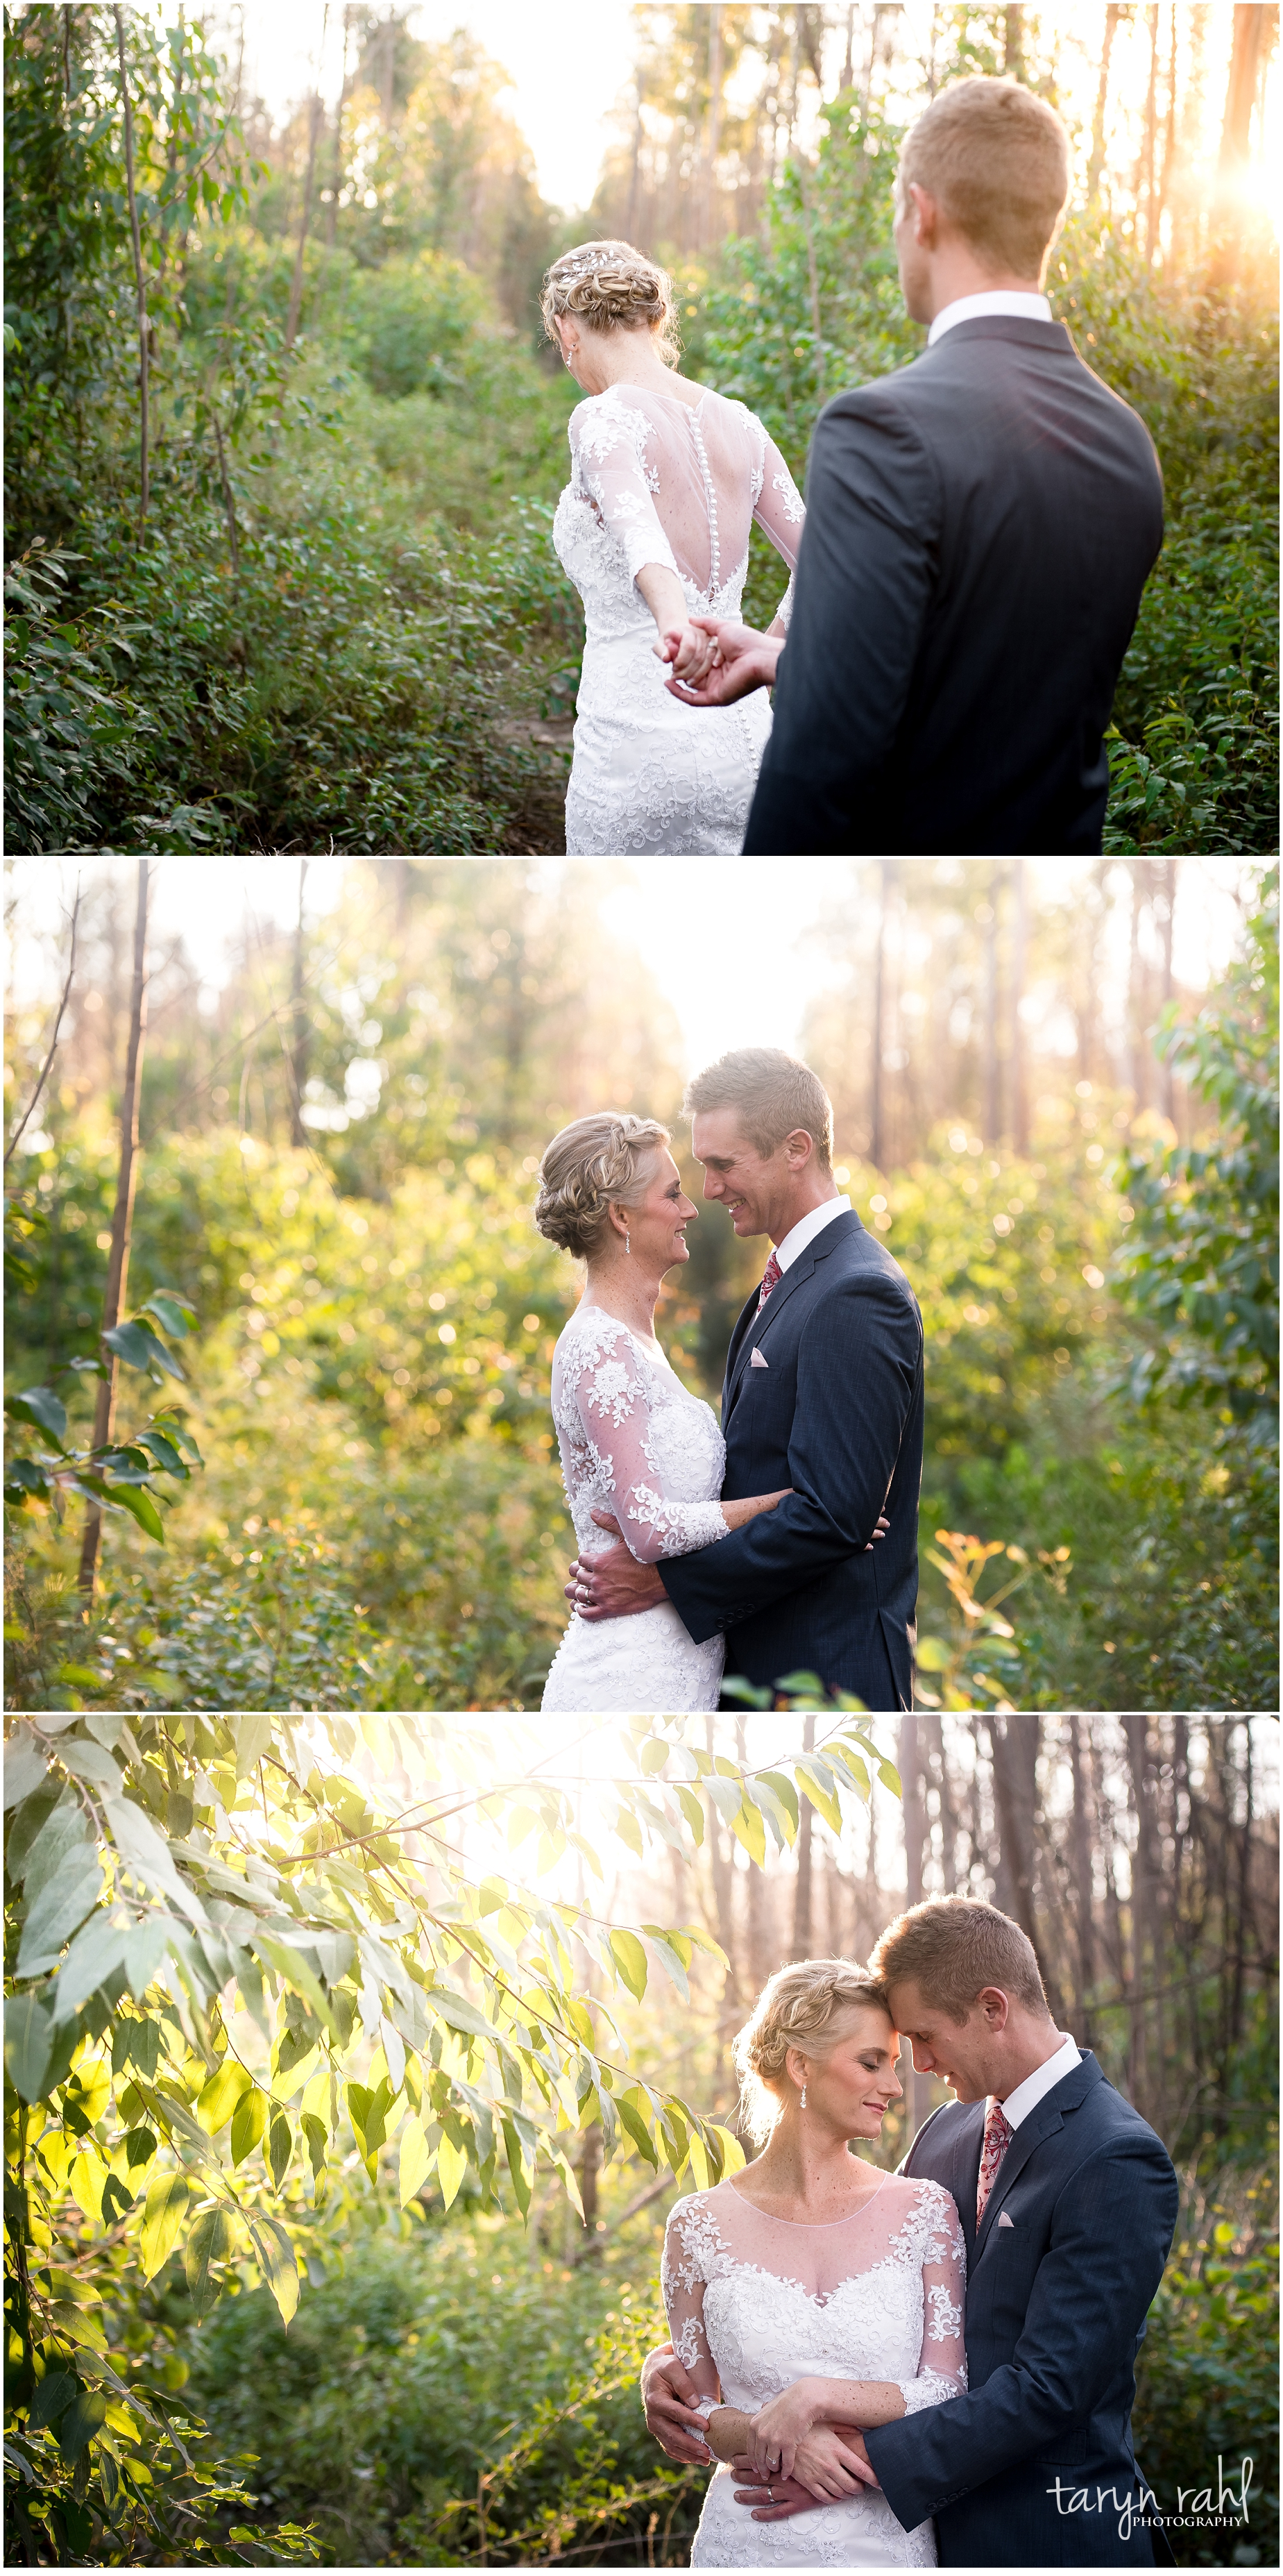 Eranee and Gert | Wedding at Slipperfields, Port Elizabeth